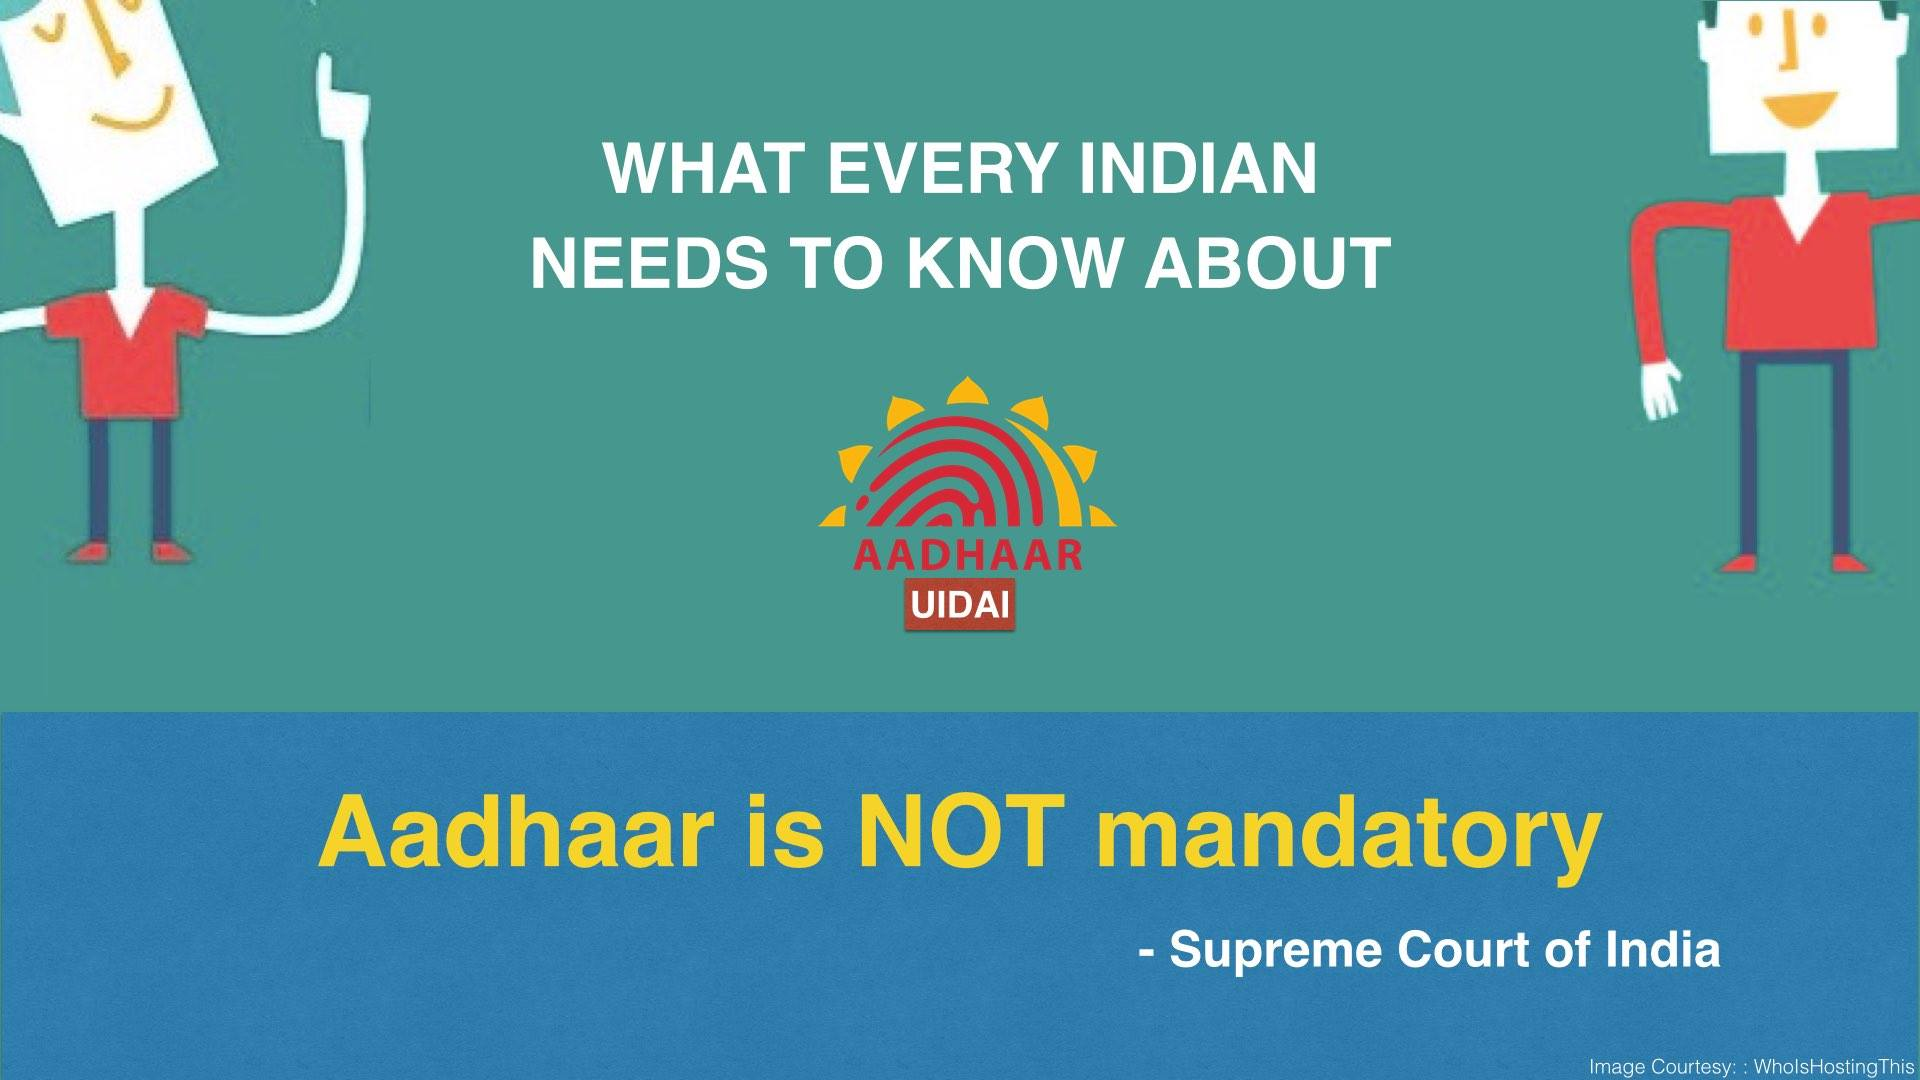 Aadhar is not Mandatory